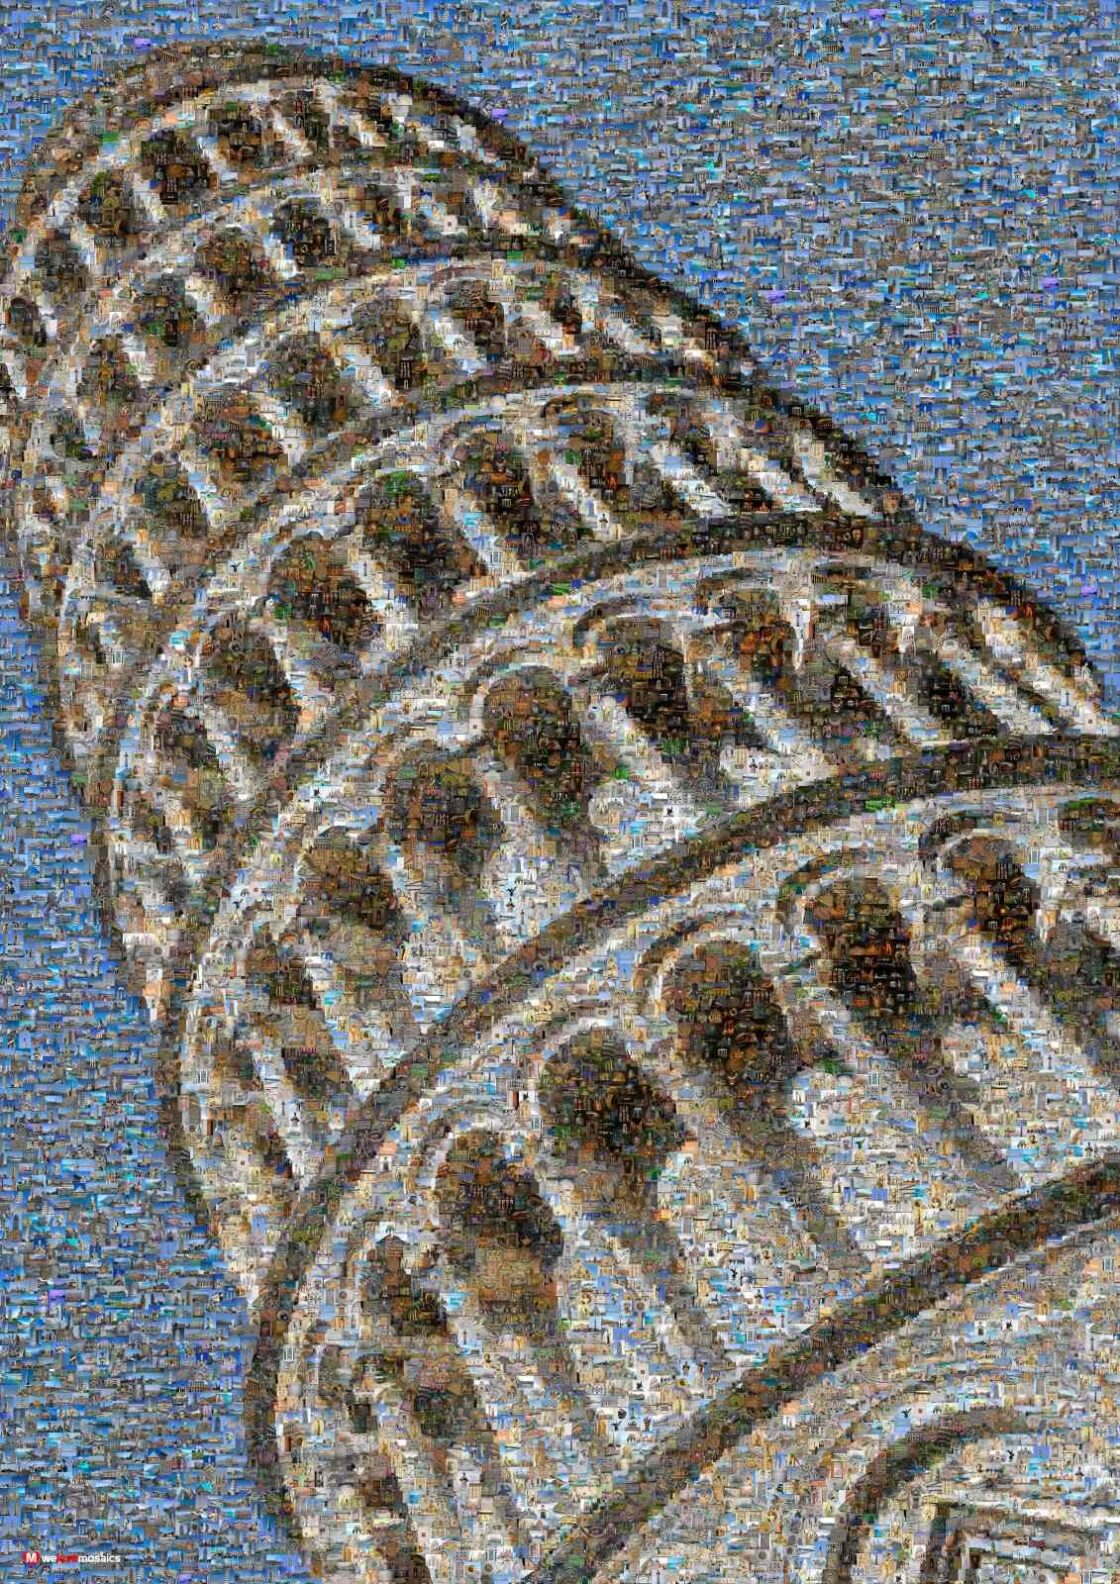 The leaning Tower of Pisa is a medieval architecture, in Romanesque style.